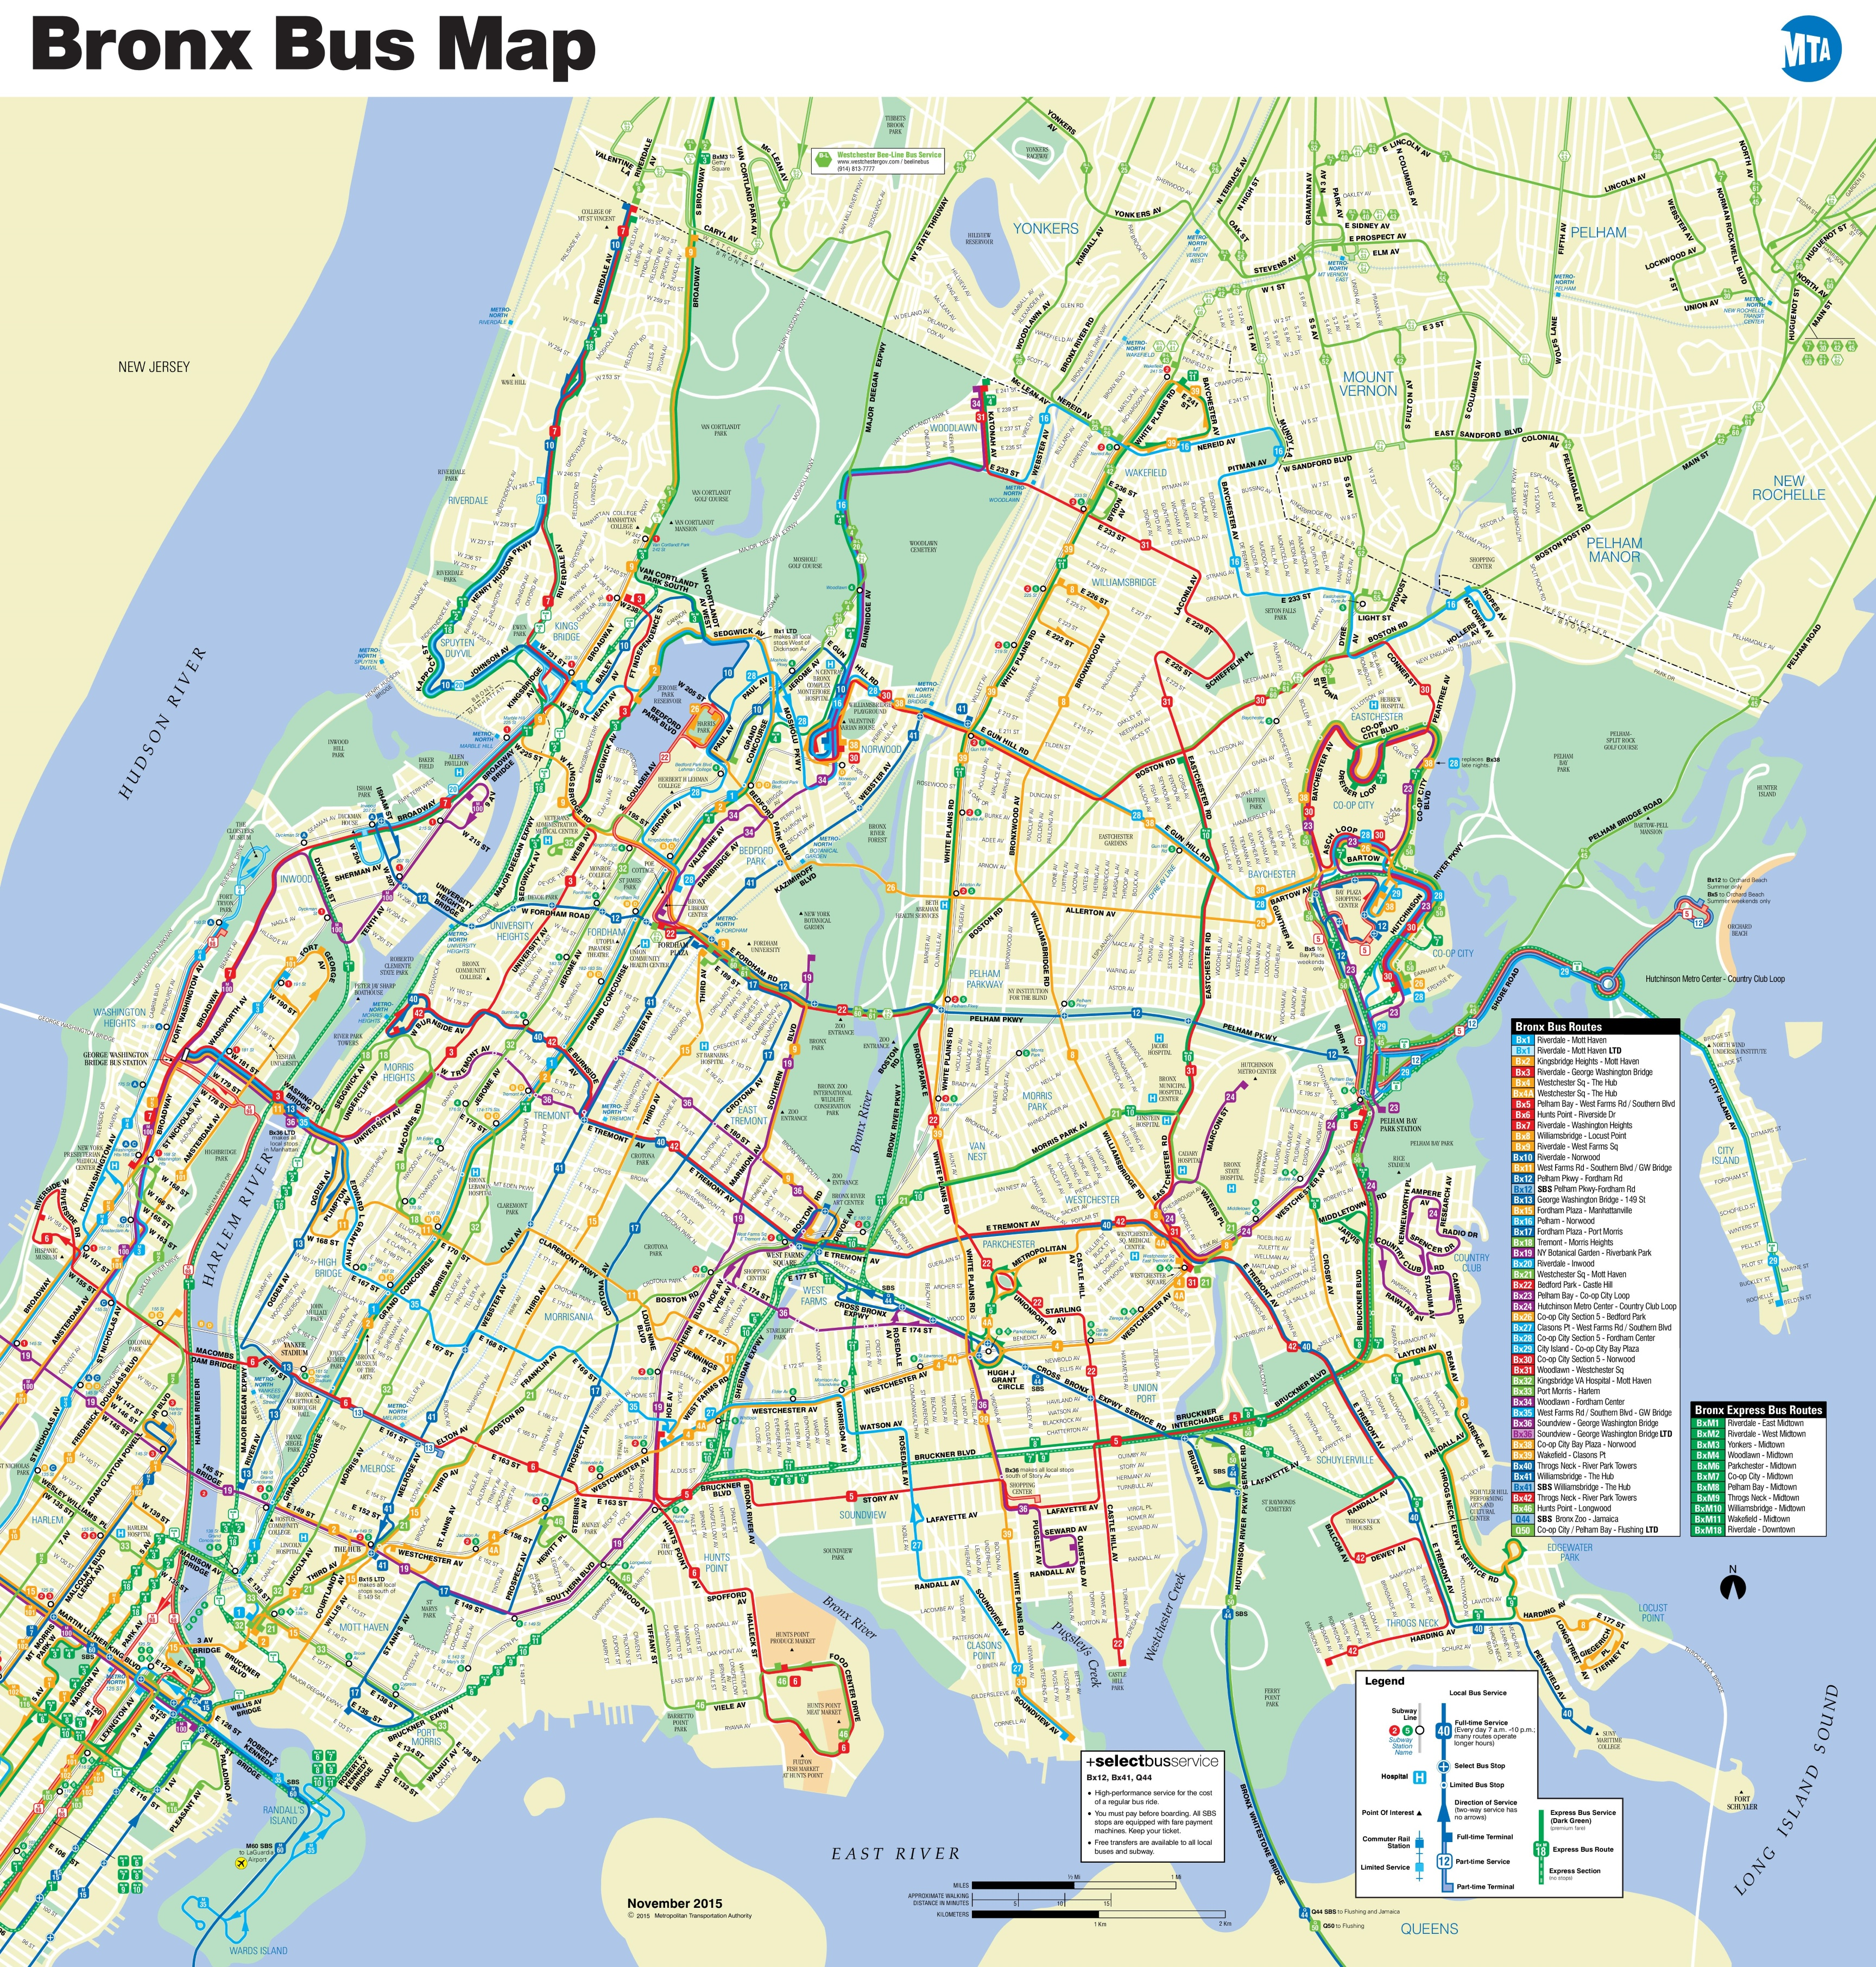 Bronx bus map